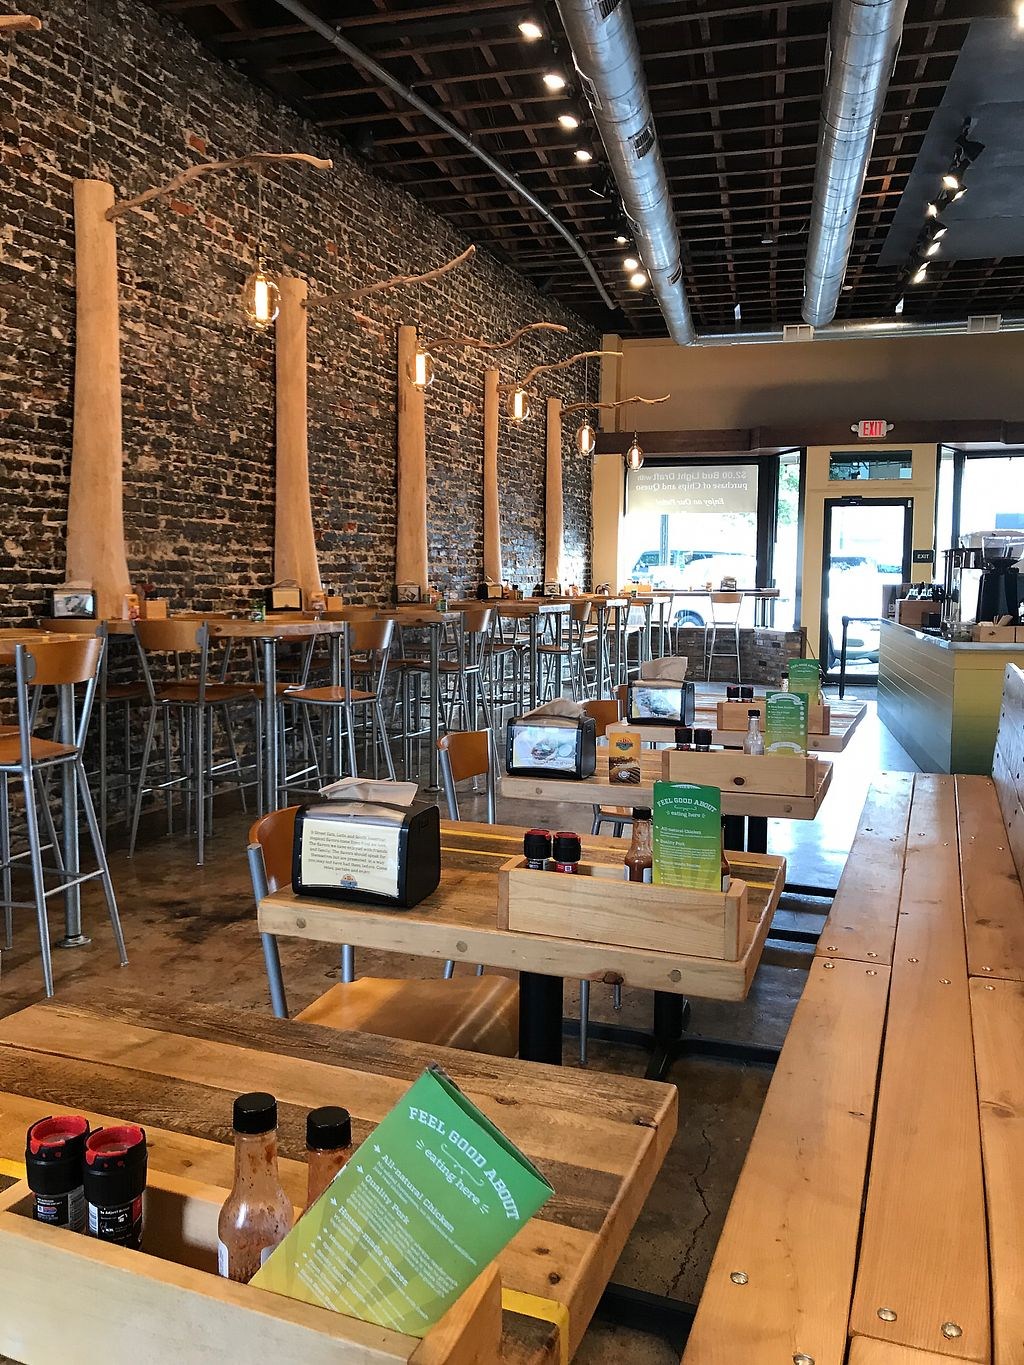 """Photo of B Street Eats  by <a href=""""/members/profile/BlakeAdele"""">BlakeAdele</a> <br/>Inside  <br/> April 23, 2018  - <a href='/contact/abuse/image/93111/390177'>Report</a>"""